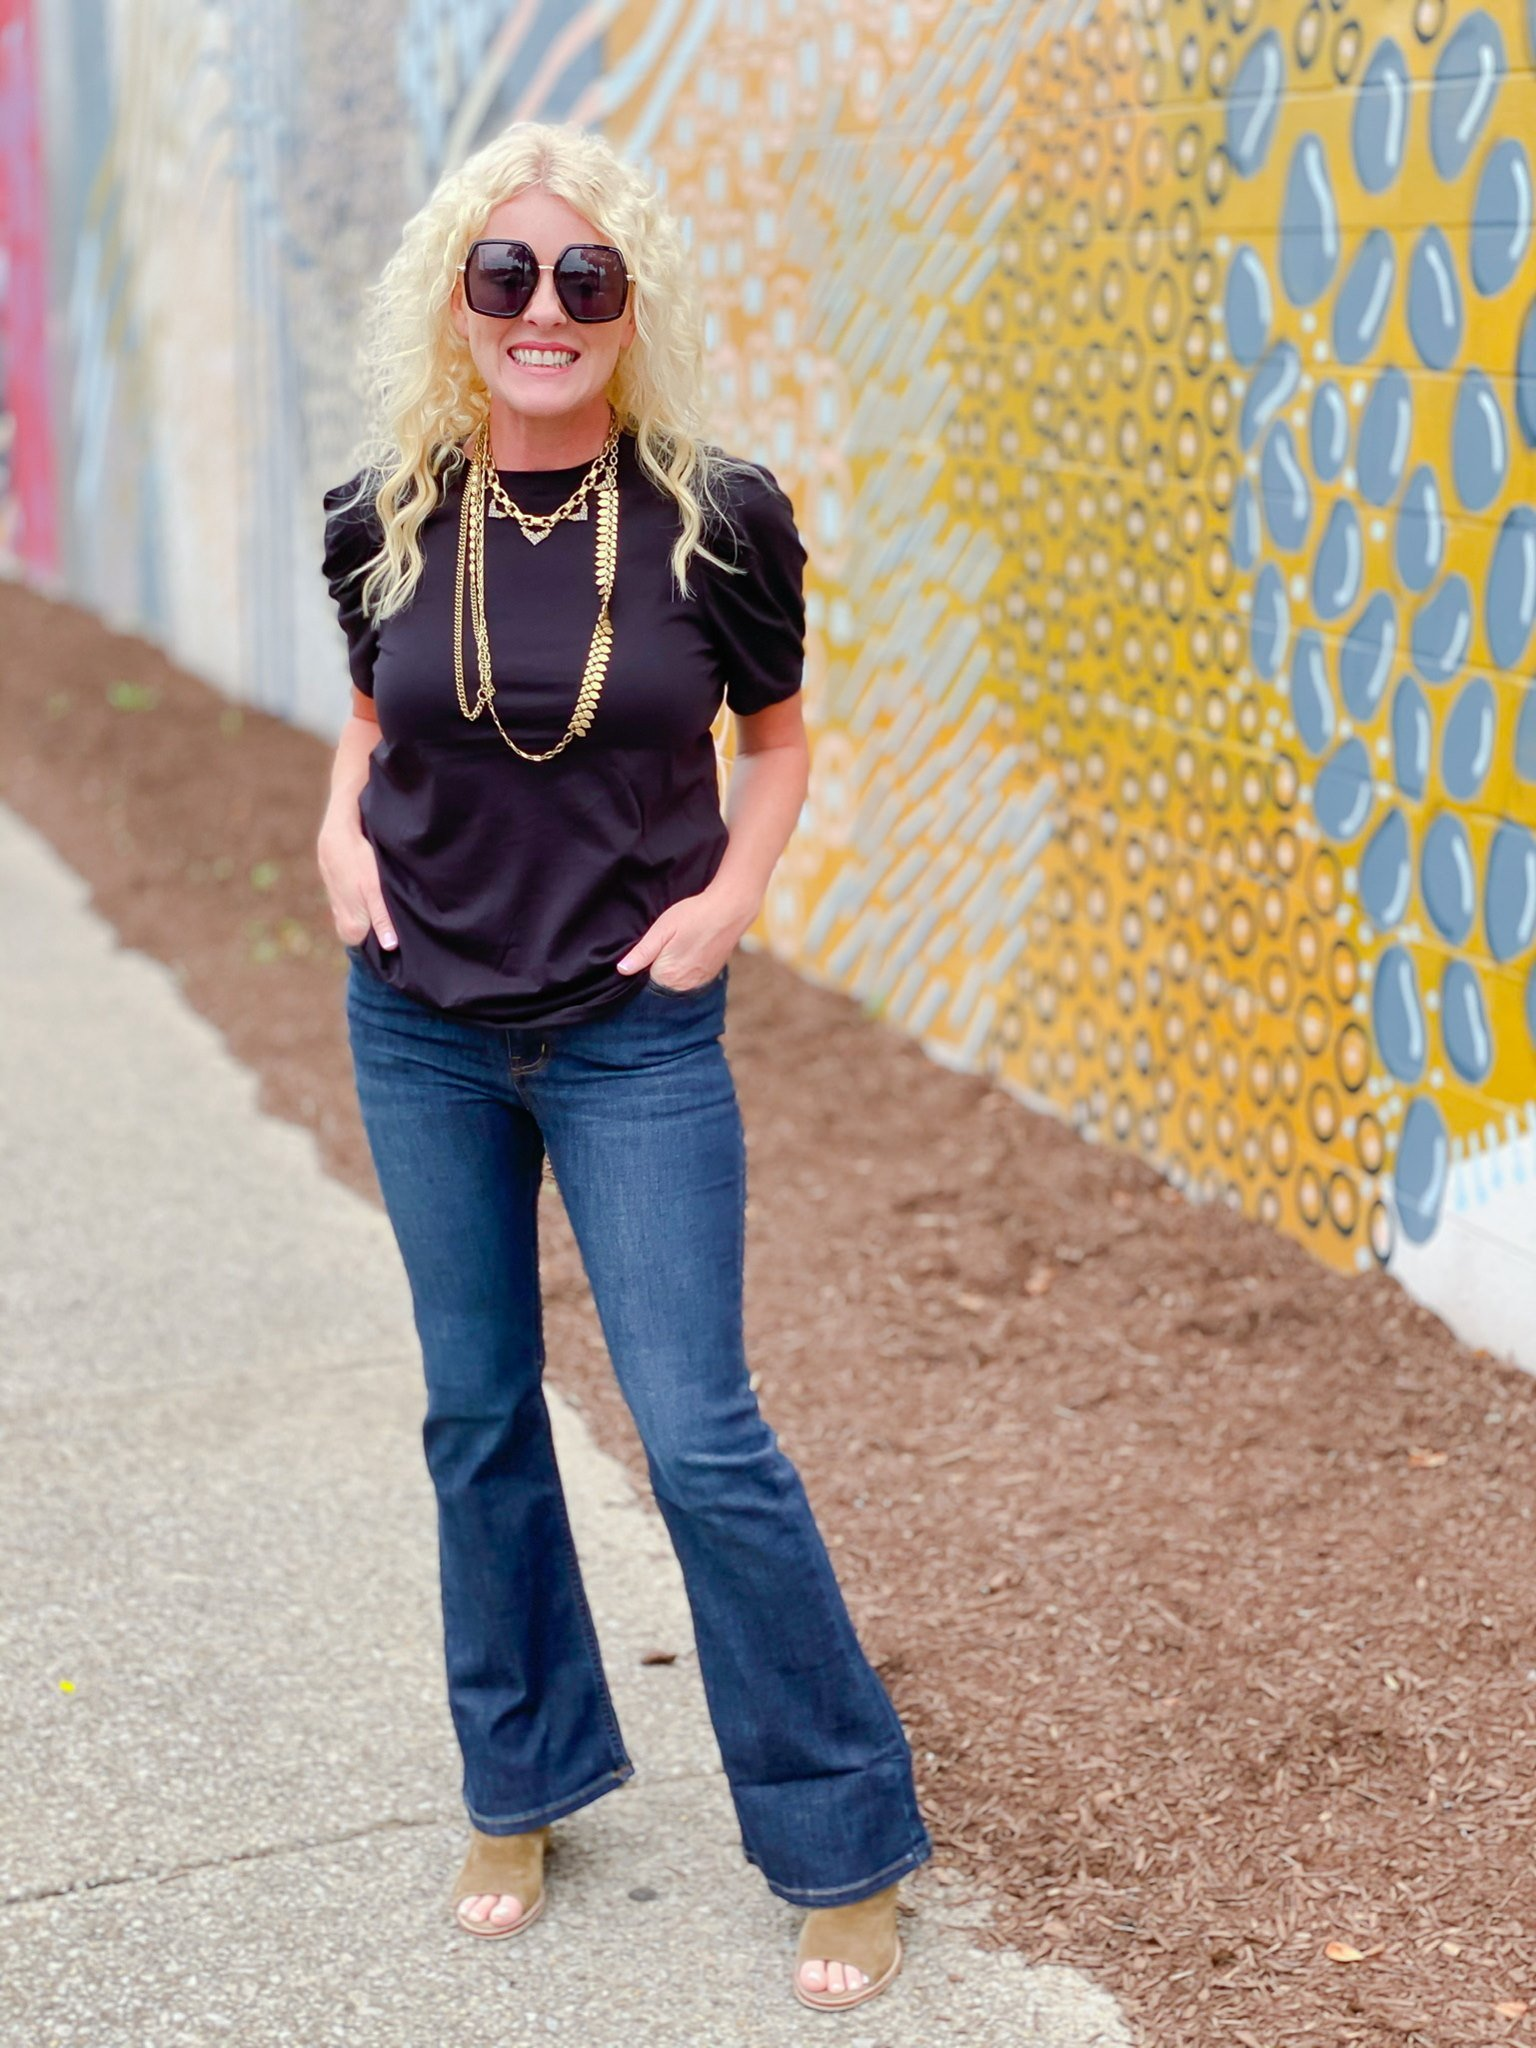 Bellflare pant by Good Hart, a womens clothing line by Matilda Jane